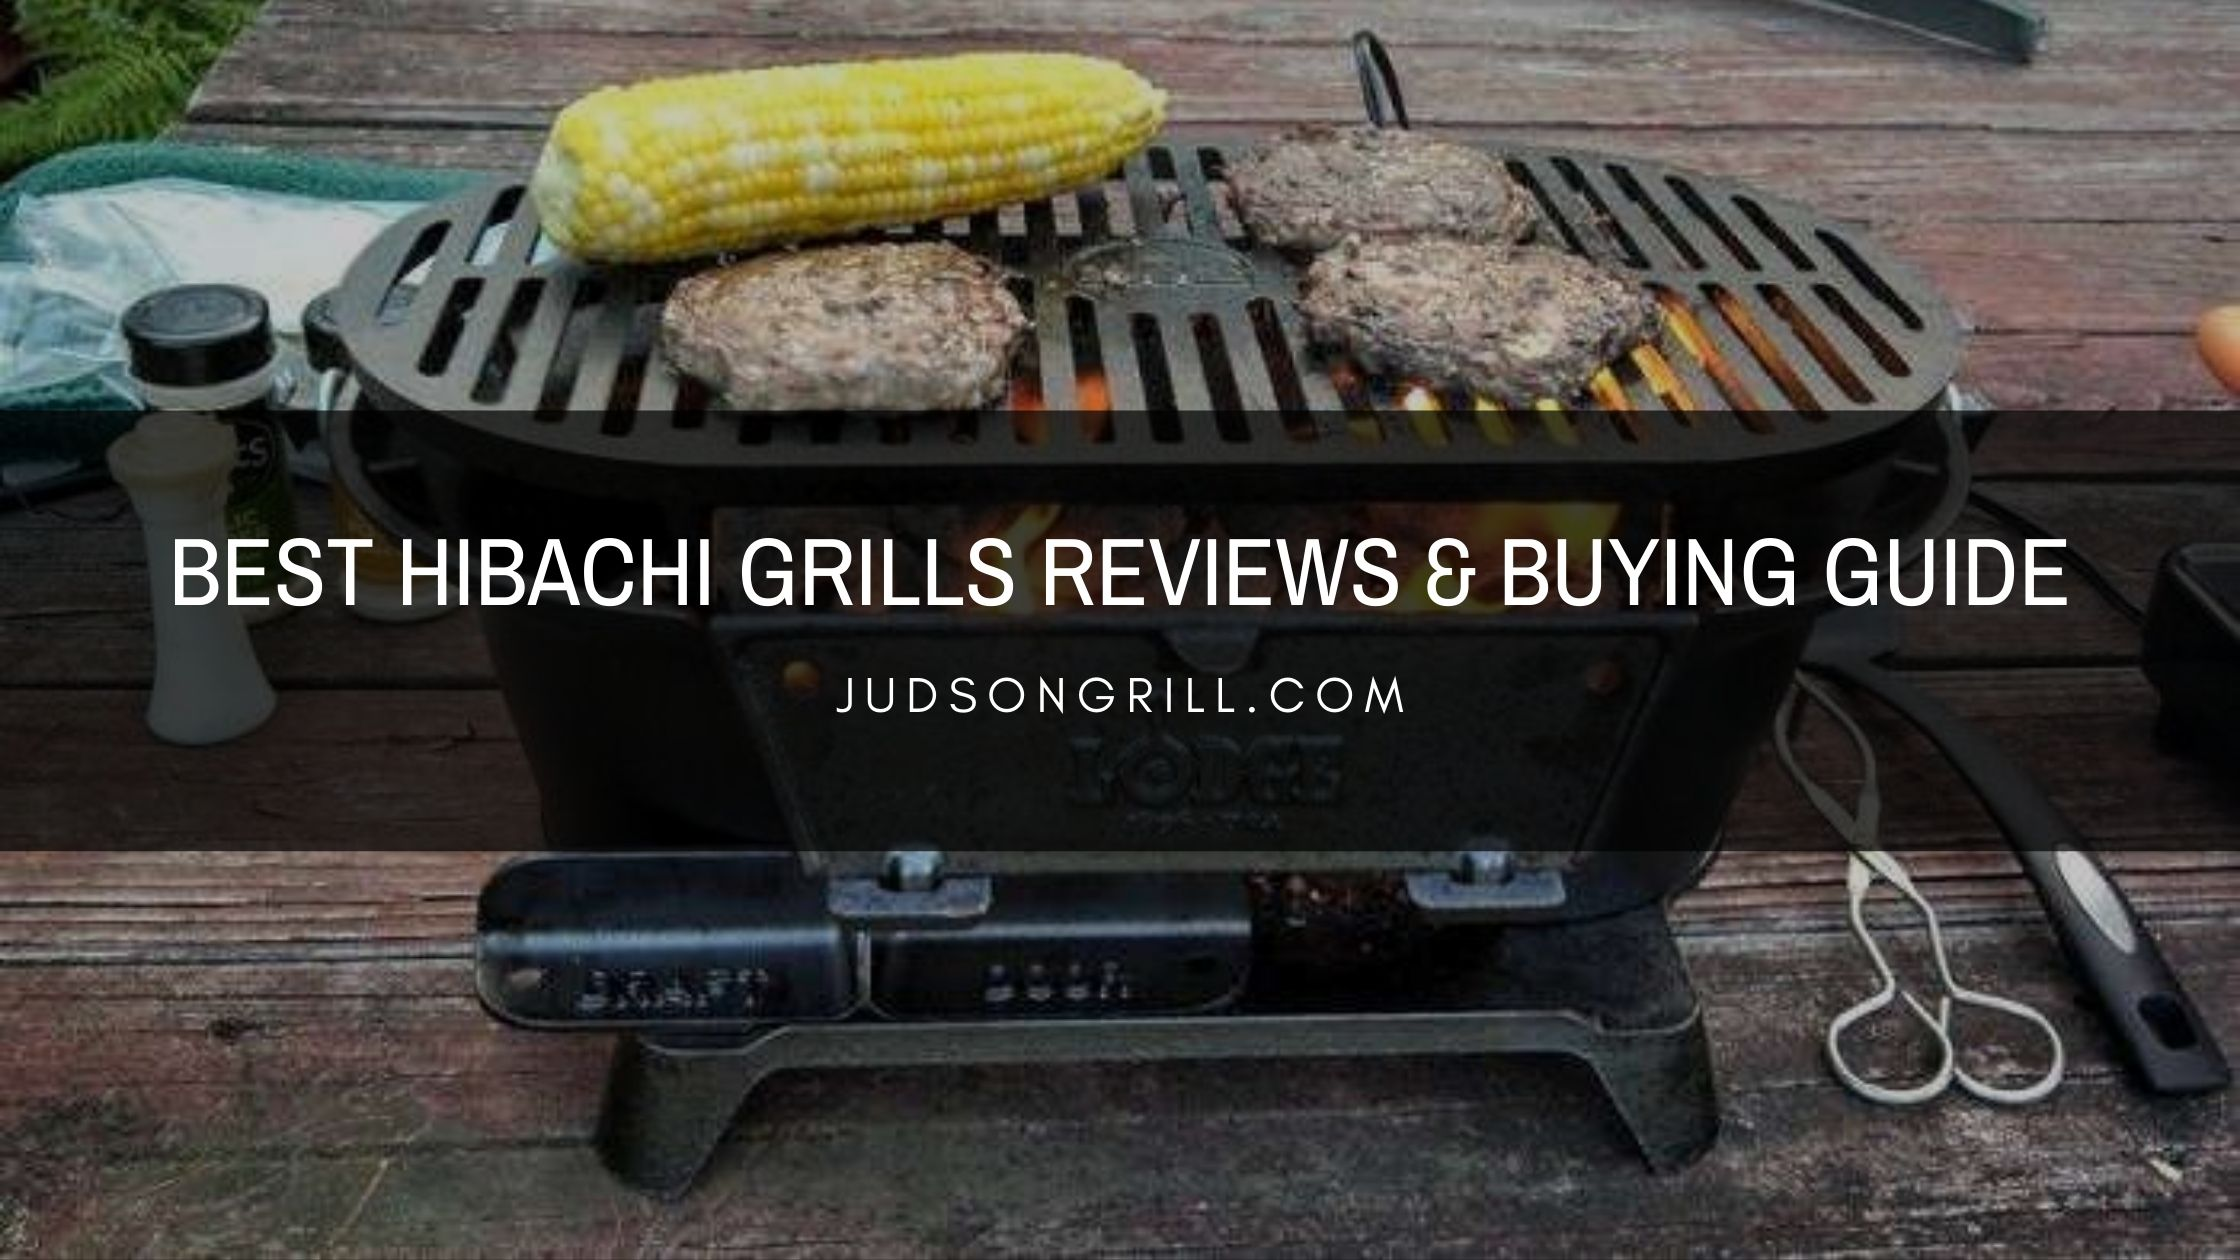 Best Hibachi Grills Reviews & Buying Guide